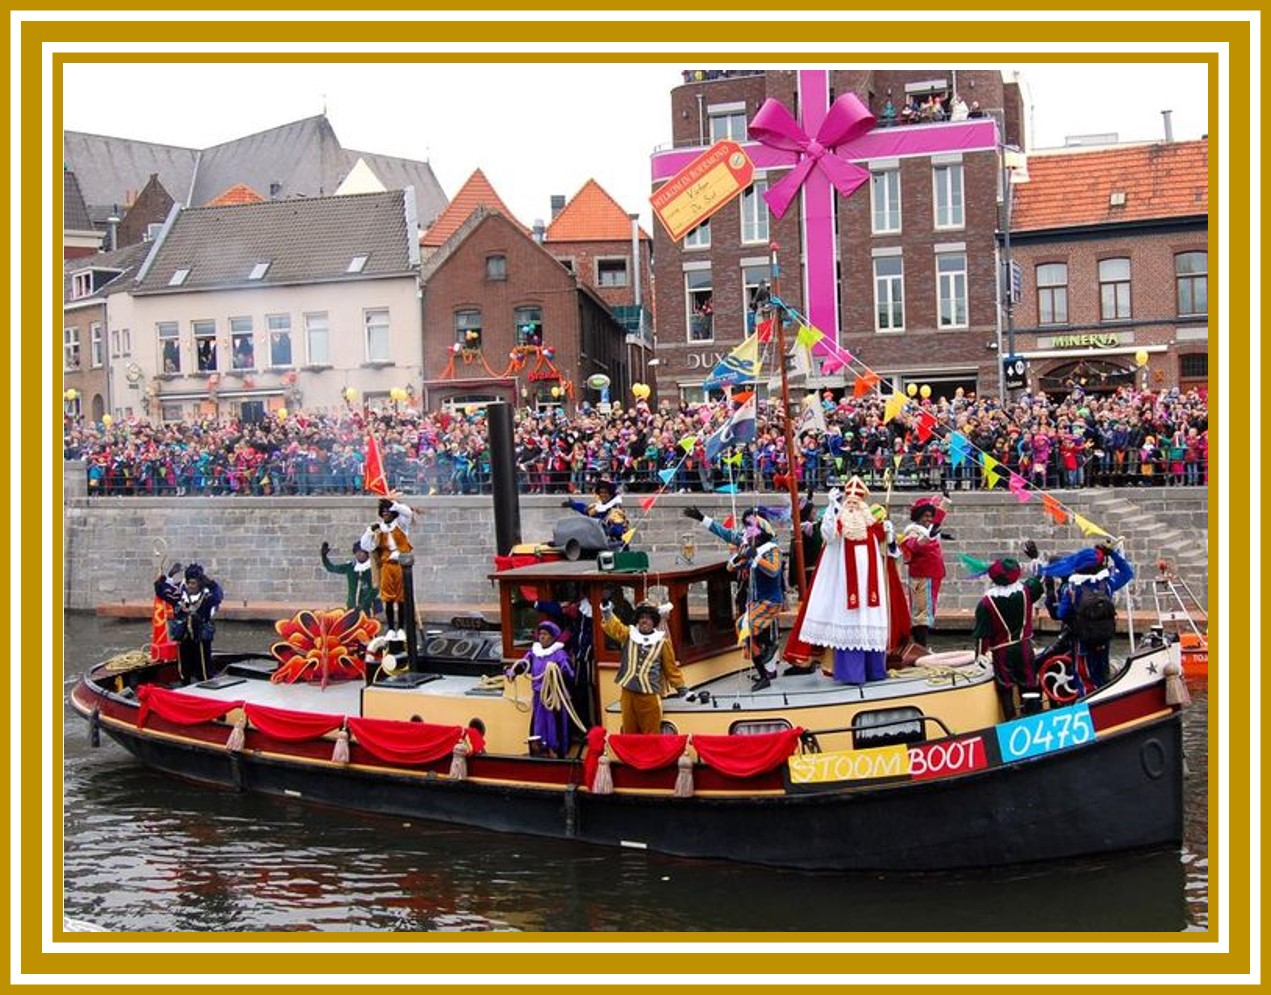 Sinterklass arrives in town for Christmas while riding a boat. | OrnamentShop.com